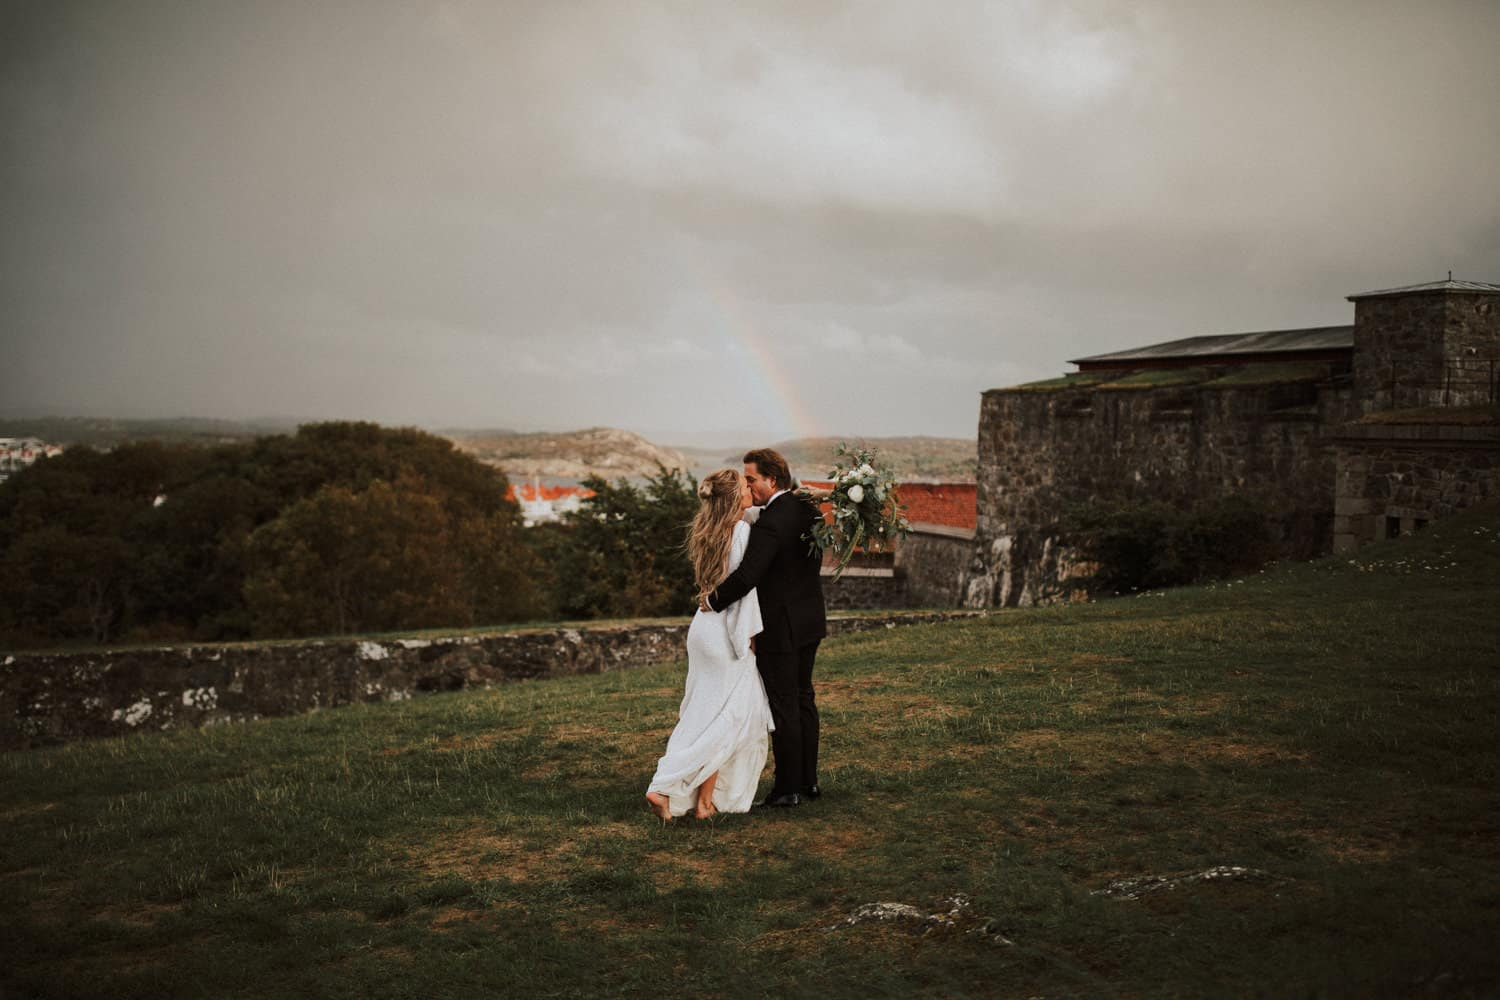 A wedding couple is standing on a meadow and kissing each other.